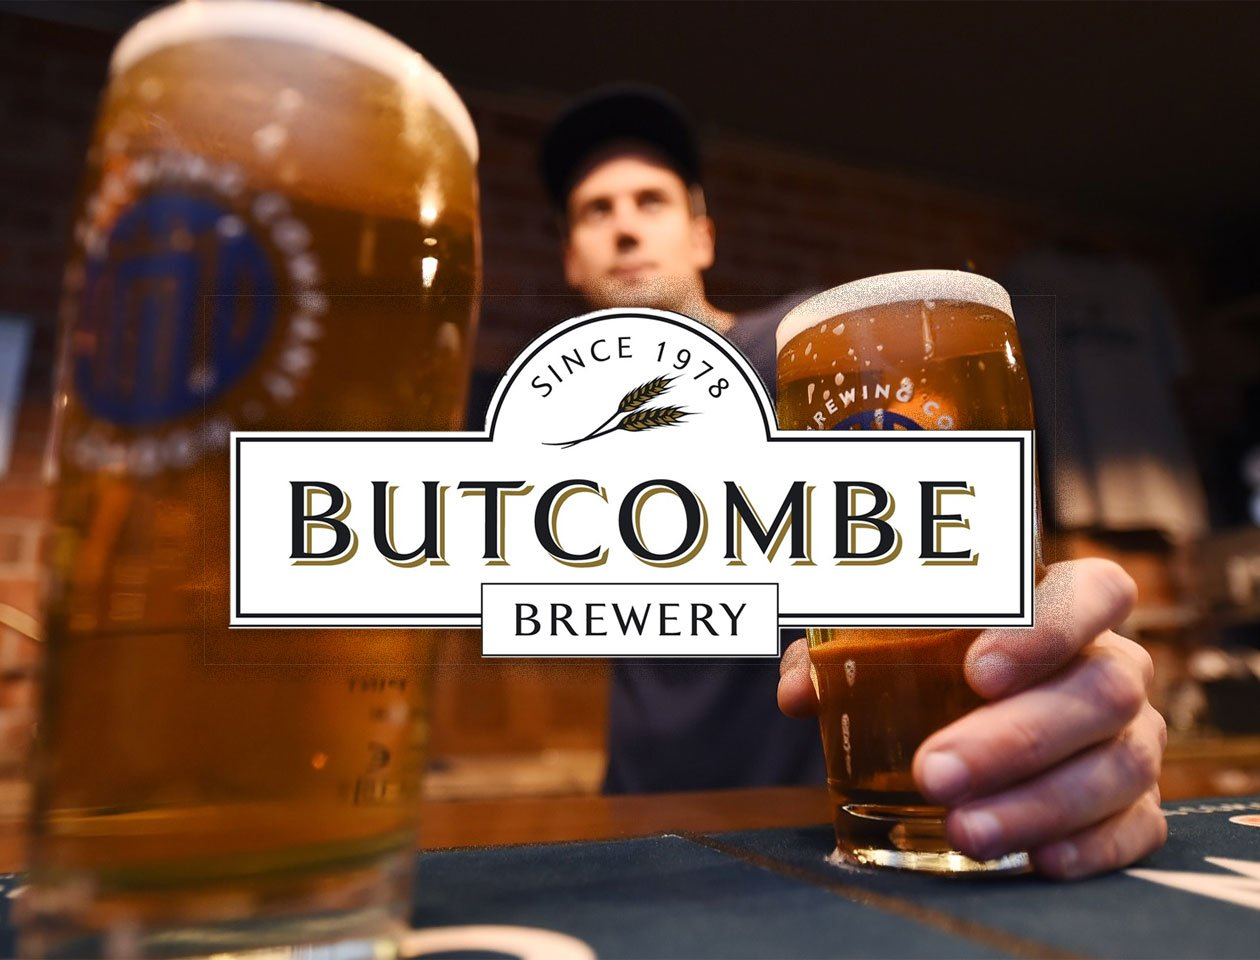 butcome-brewery